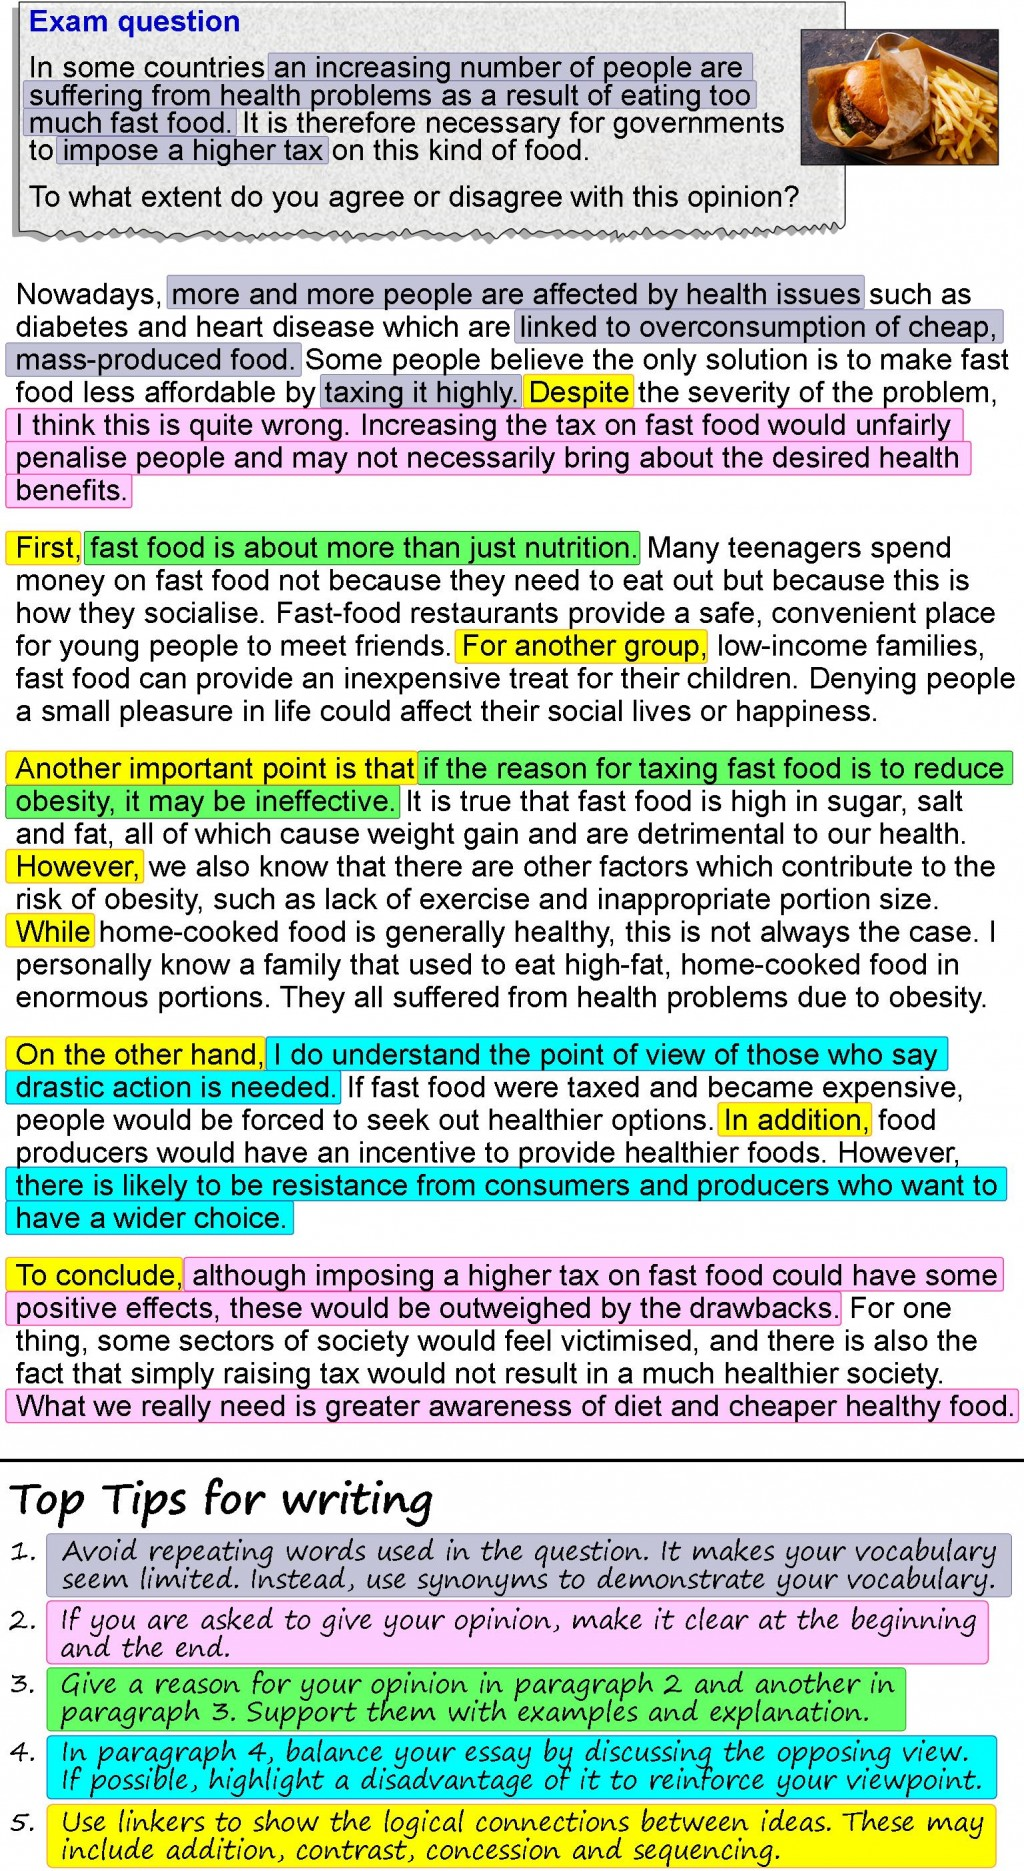 001 Opinion Essay About Fast Food Example An 4 Unbelievable British Council Large